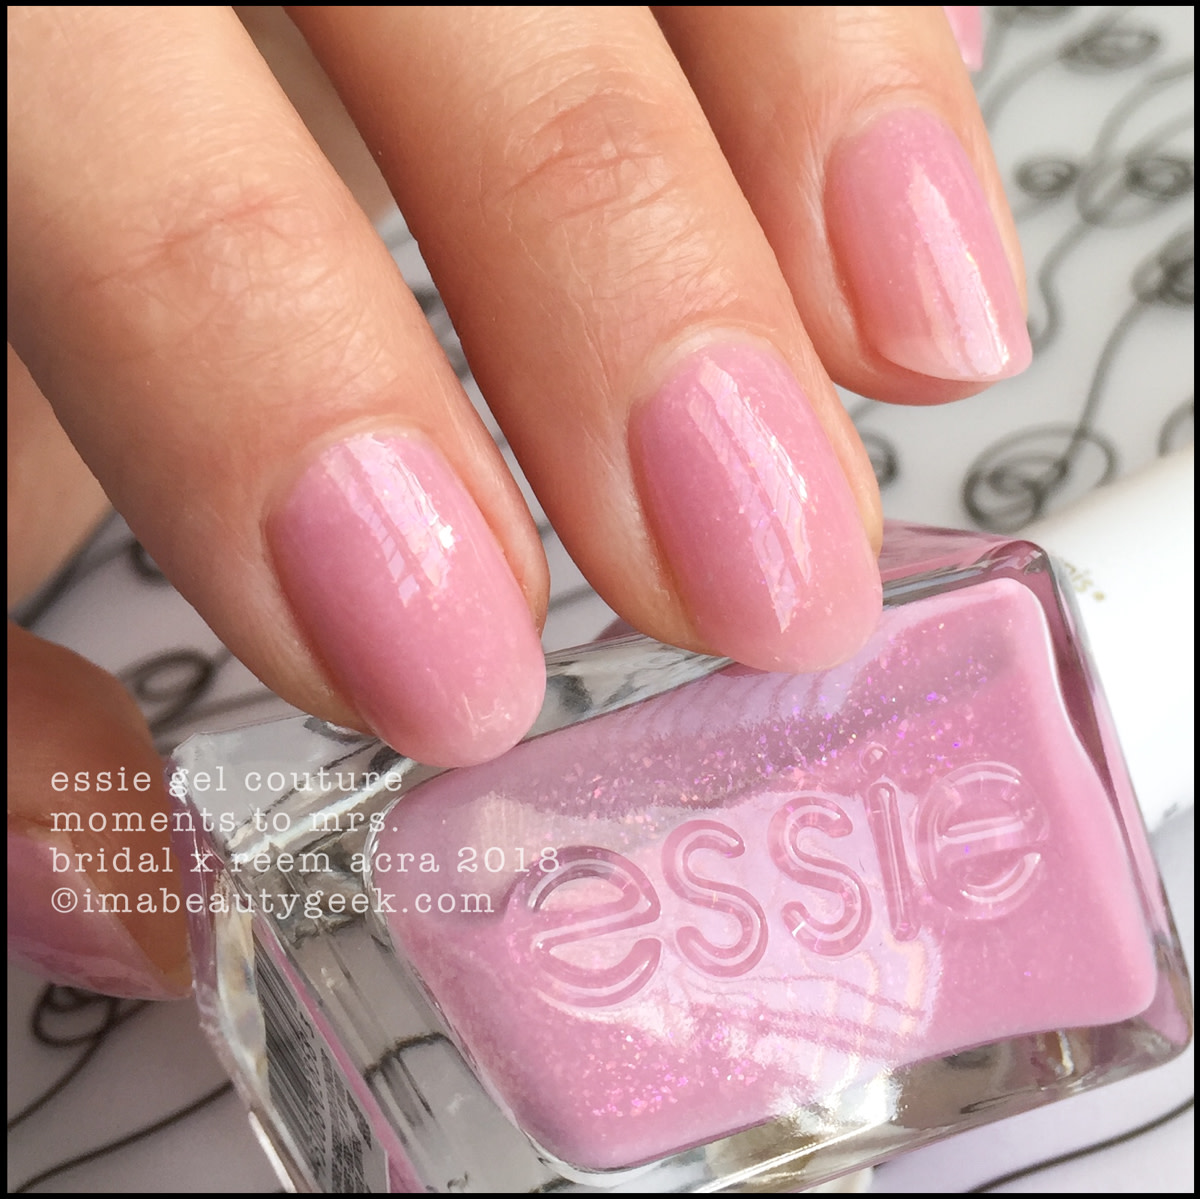 Essie Moments to Mrs - Essie Bridal x Reem Acra Gel Couture 2018 2